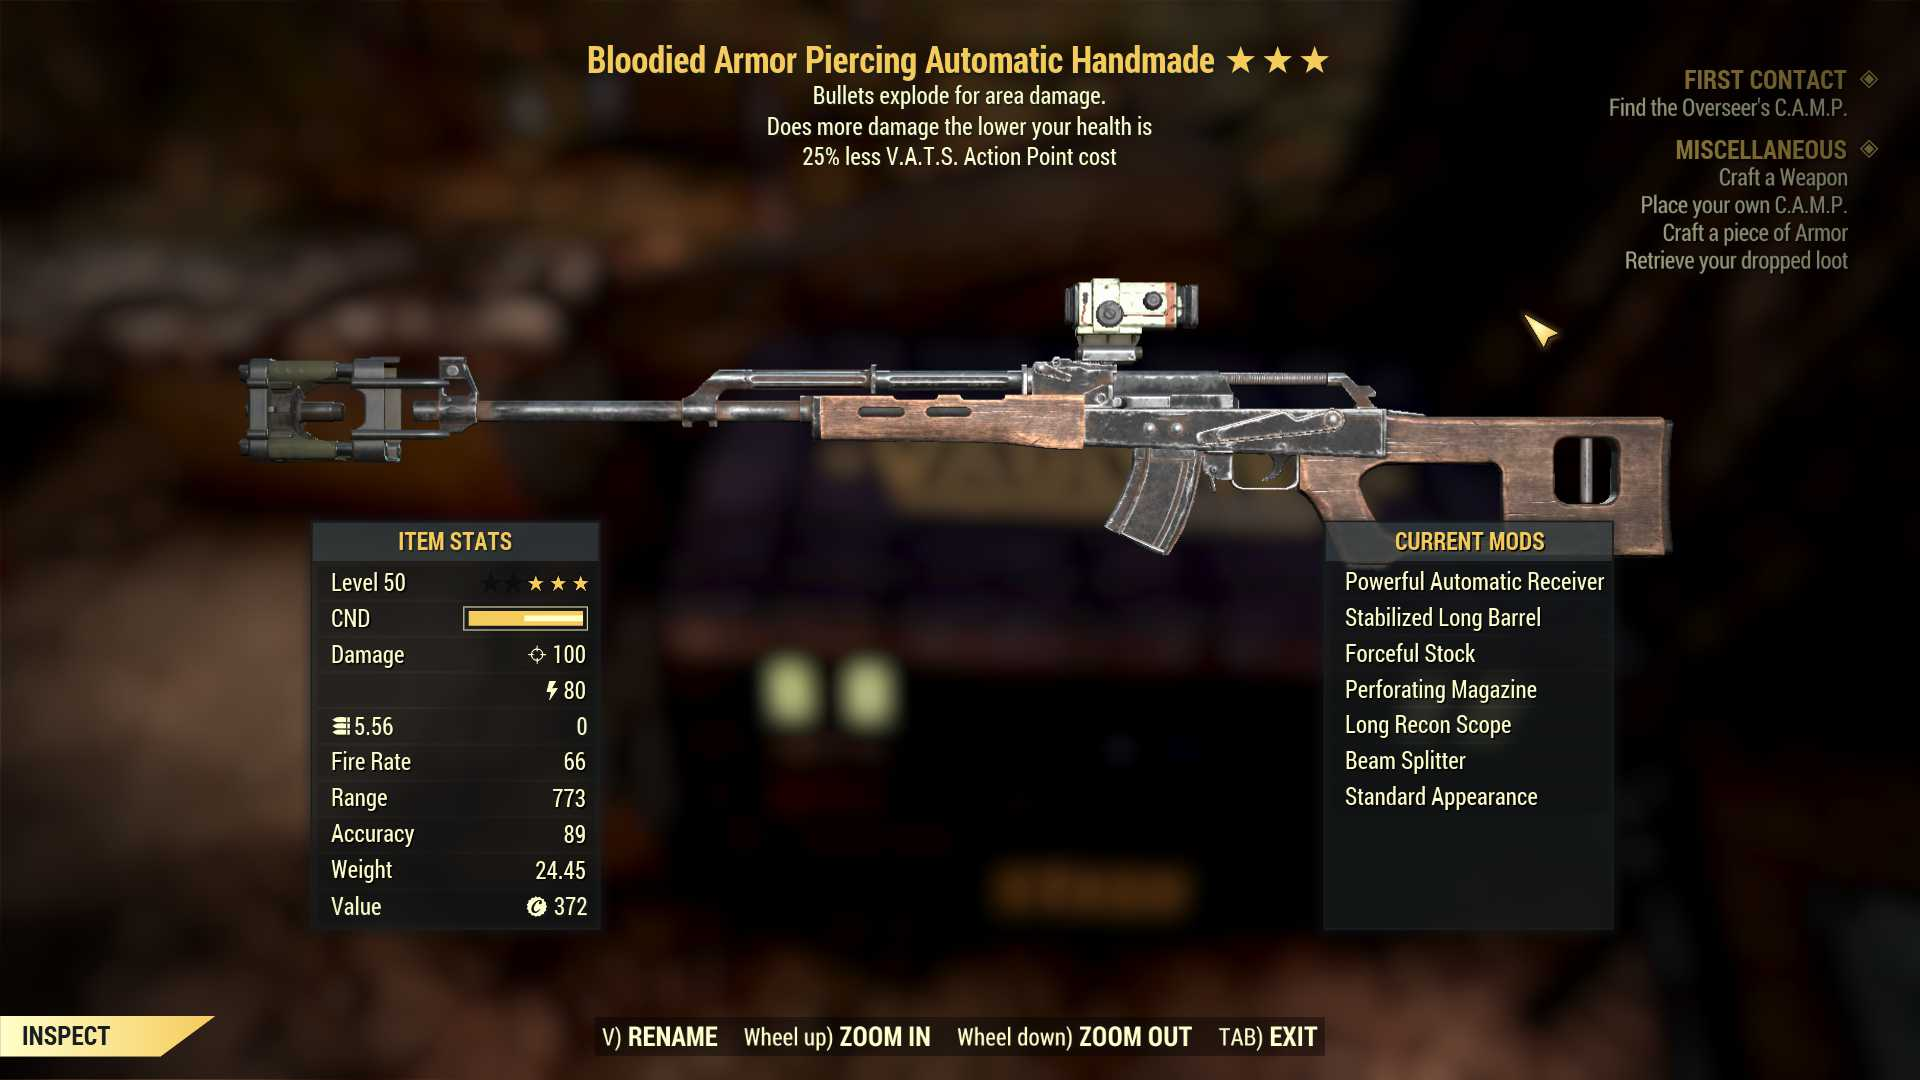 Bloodied Armor Piercing Automatic Handmade (3*/50lvl, Explosive, 25% less VATS AP cost)